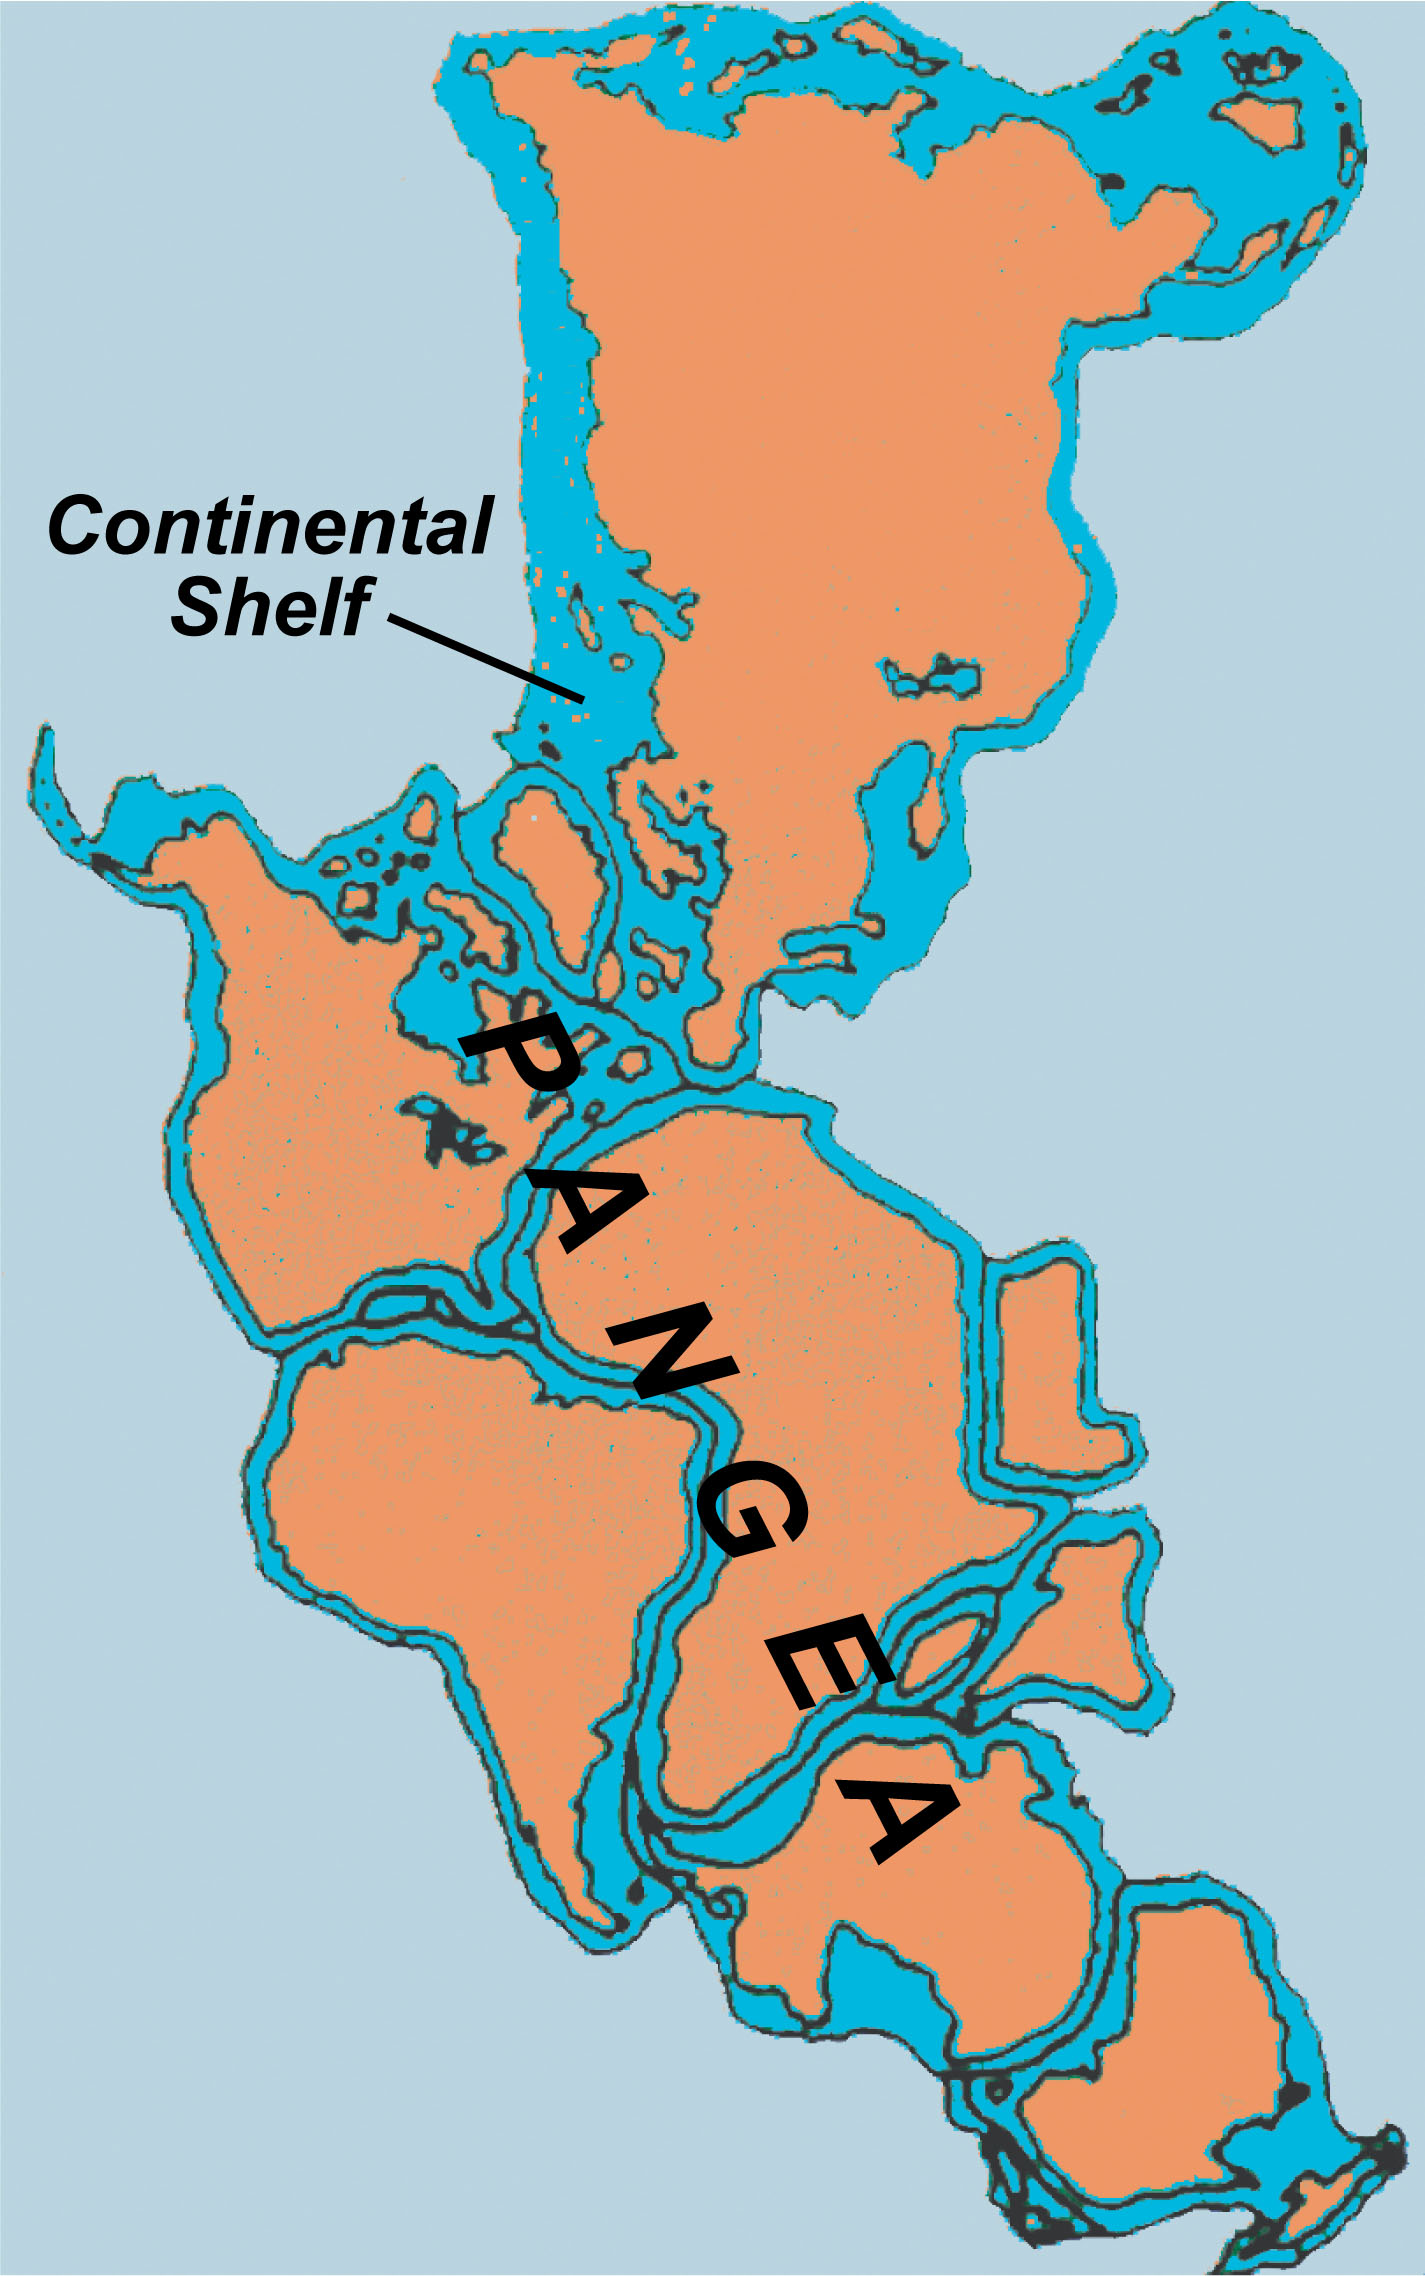 Plate Tectonics The Unifying Theory Of Geology Geology U S National Park Service